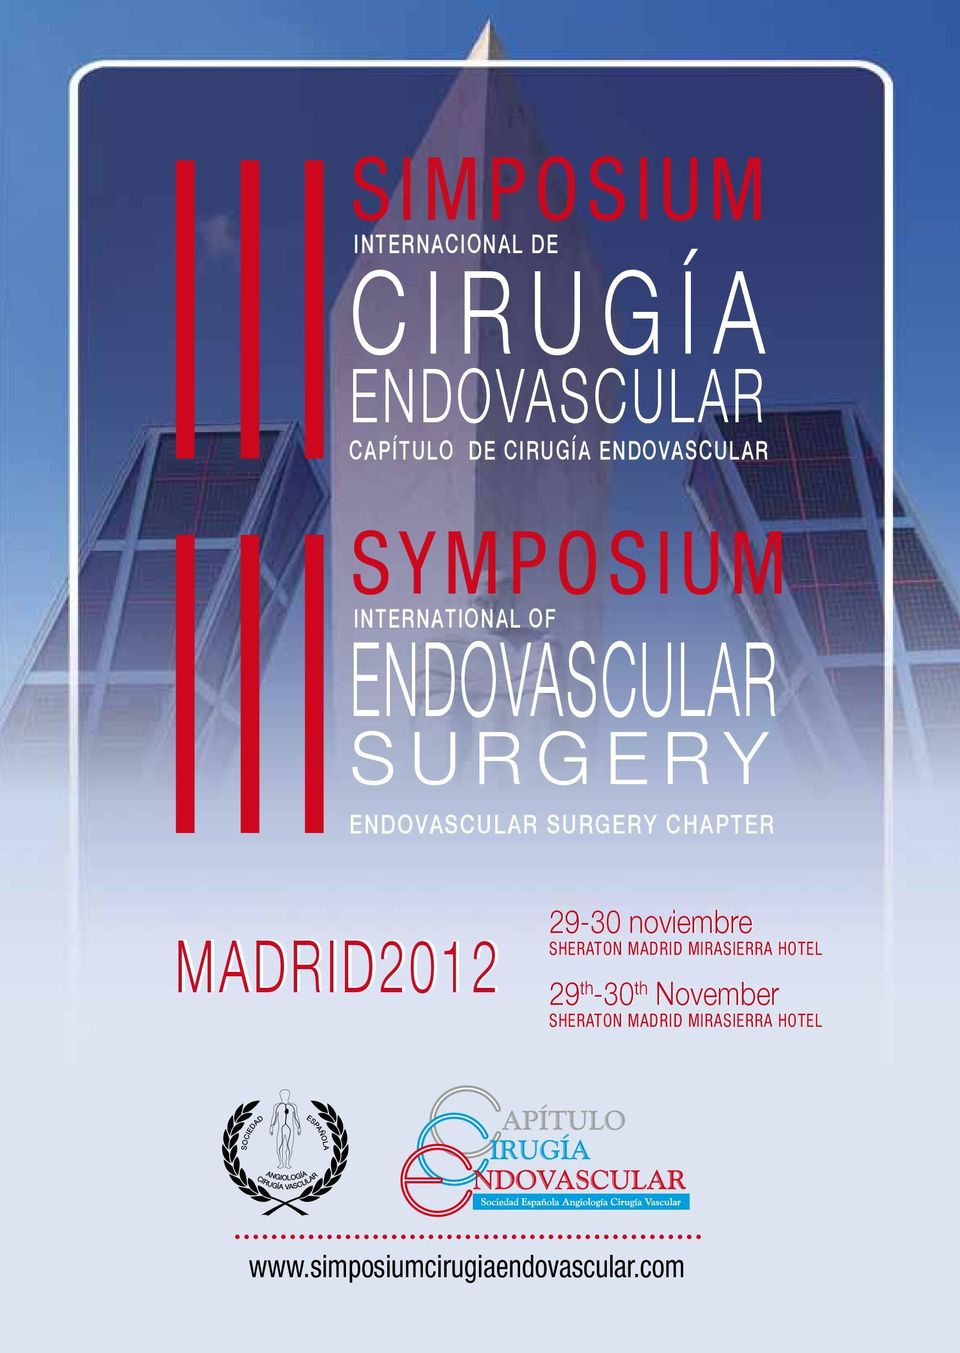 SURGERY CHAPTER MADRID2012 29-30 noviembre Sheraton Madrid Mirasierra Hotel 29